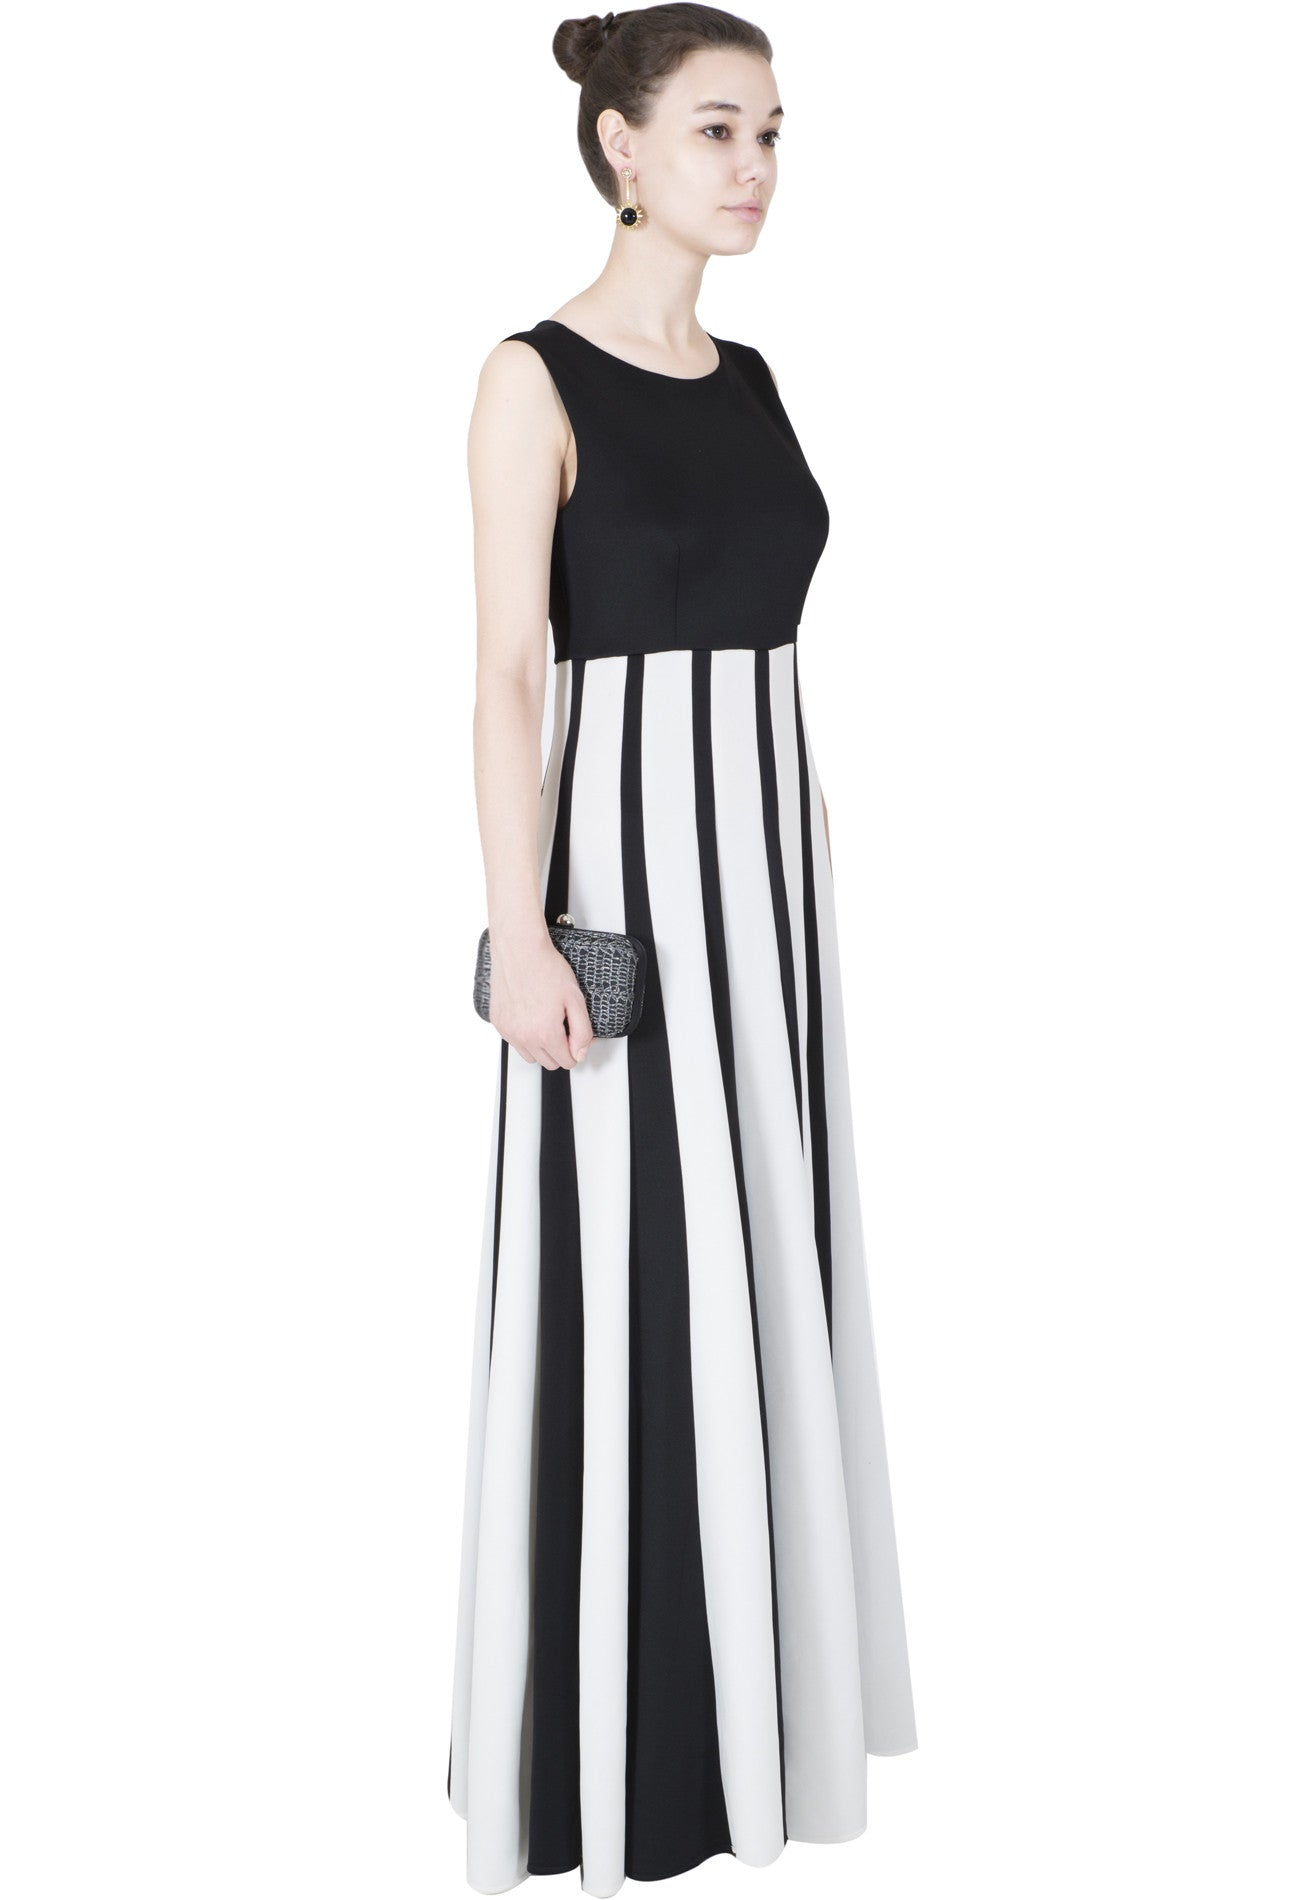 BLACK AND WHITE STRIPED GOWN   Vintage Desi